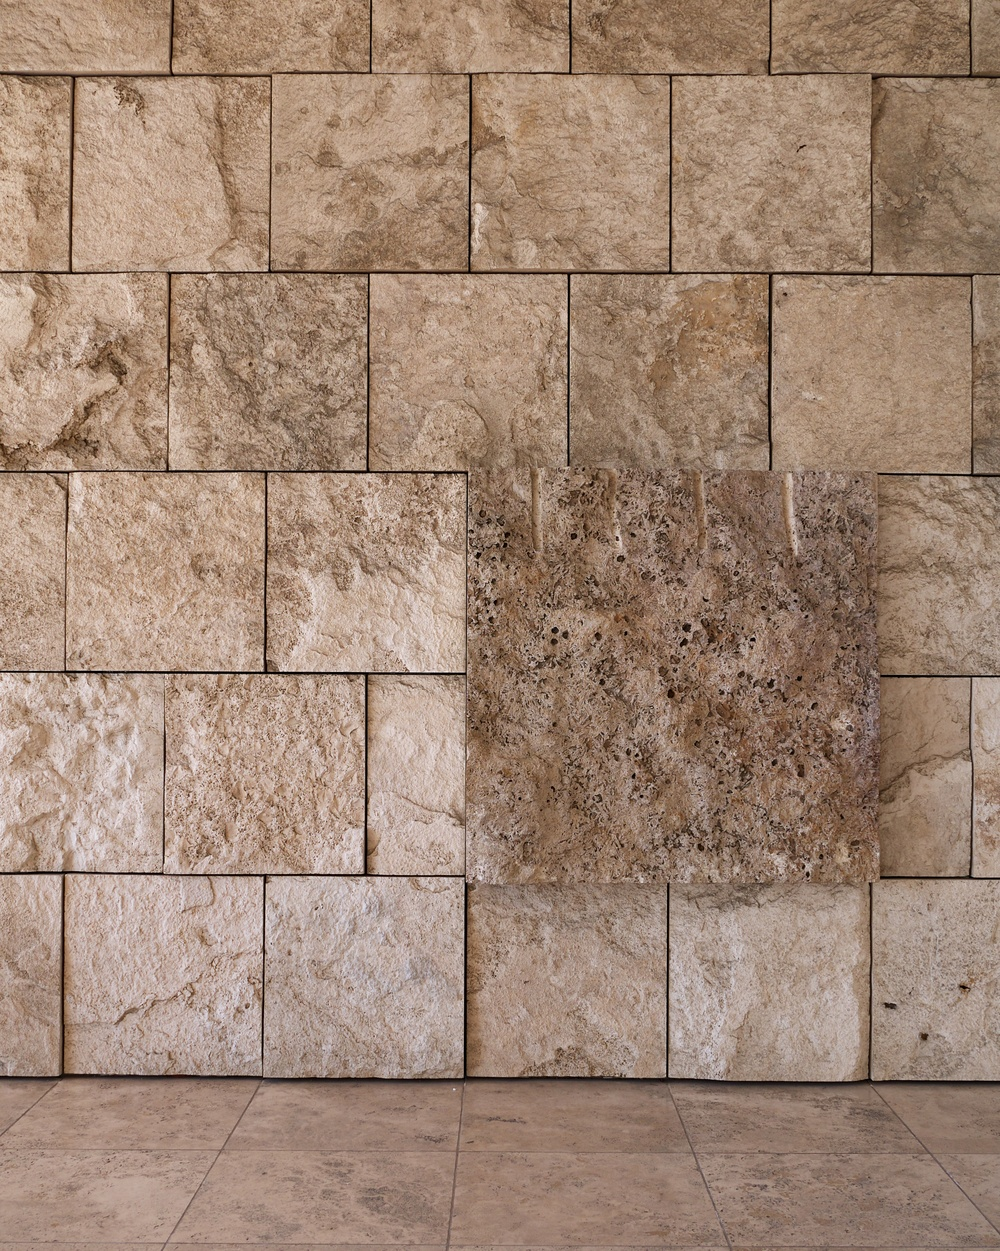 The strong square motif can be seen here, including a display block of travertine.